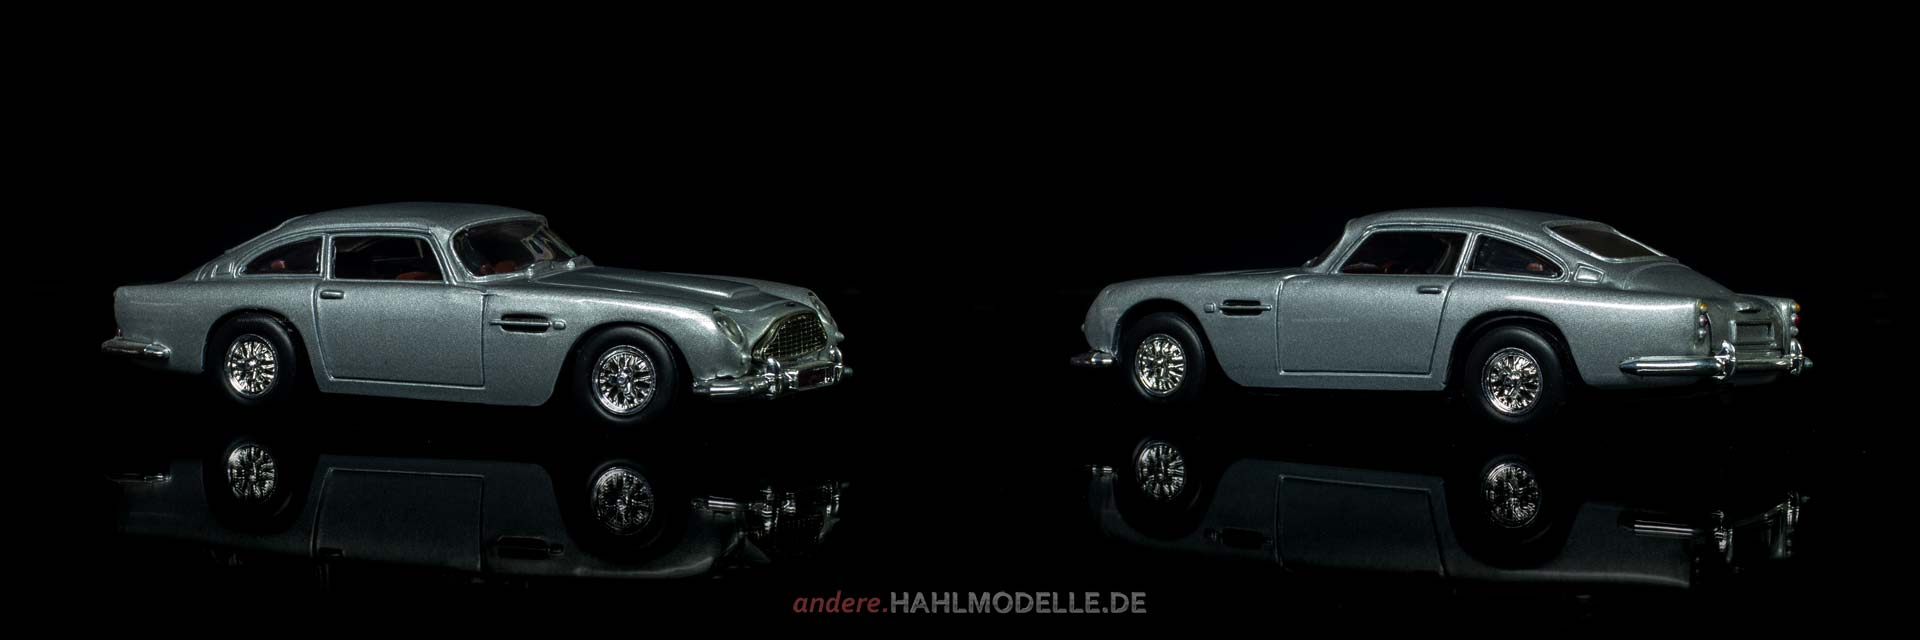 Aston Martin DB 5 | Ixo (Del Prado Car Collection) | 1:43 | www.andere.hahlmodelle.de